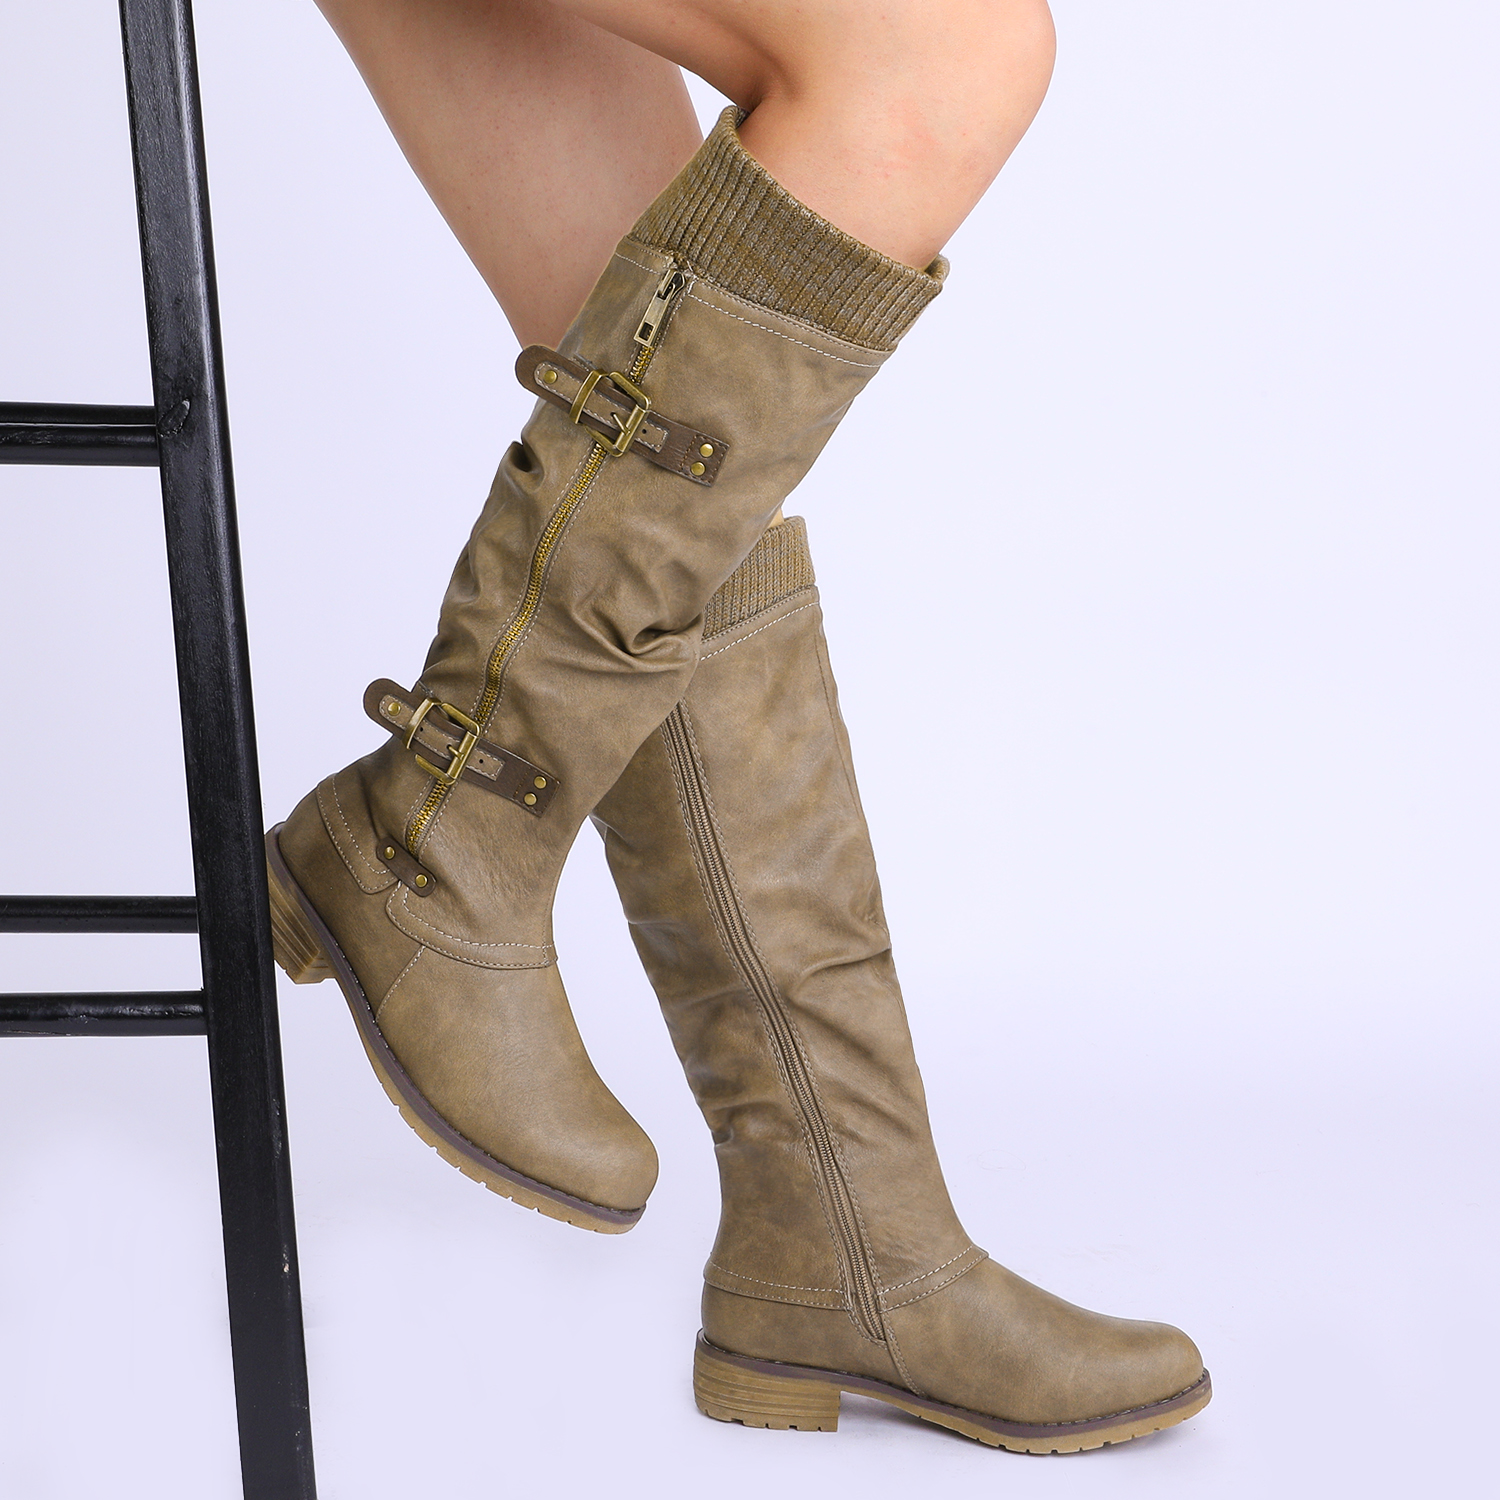 DREAM-PAIRS-Womens-DEPP-Cowgirl-Soft-PU-Leather-Combat-Knee-High-Riding-Boots thumbnail 32